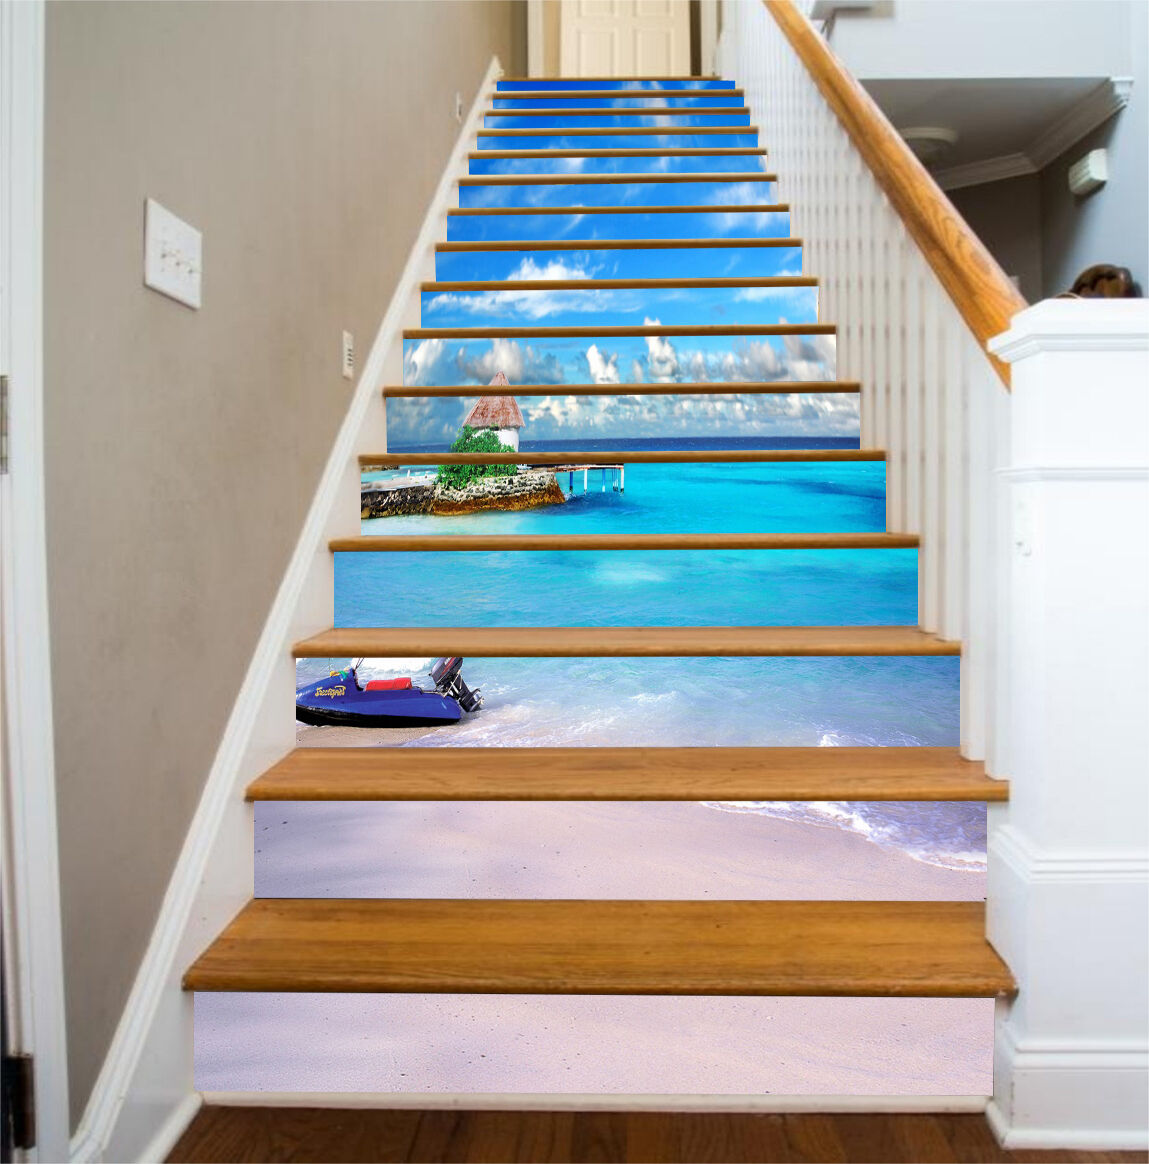 3D Ocean Boat 5 Stair Risers Decoration Photo Mural Vinyl Decal Wallpaper UK